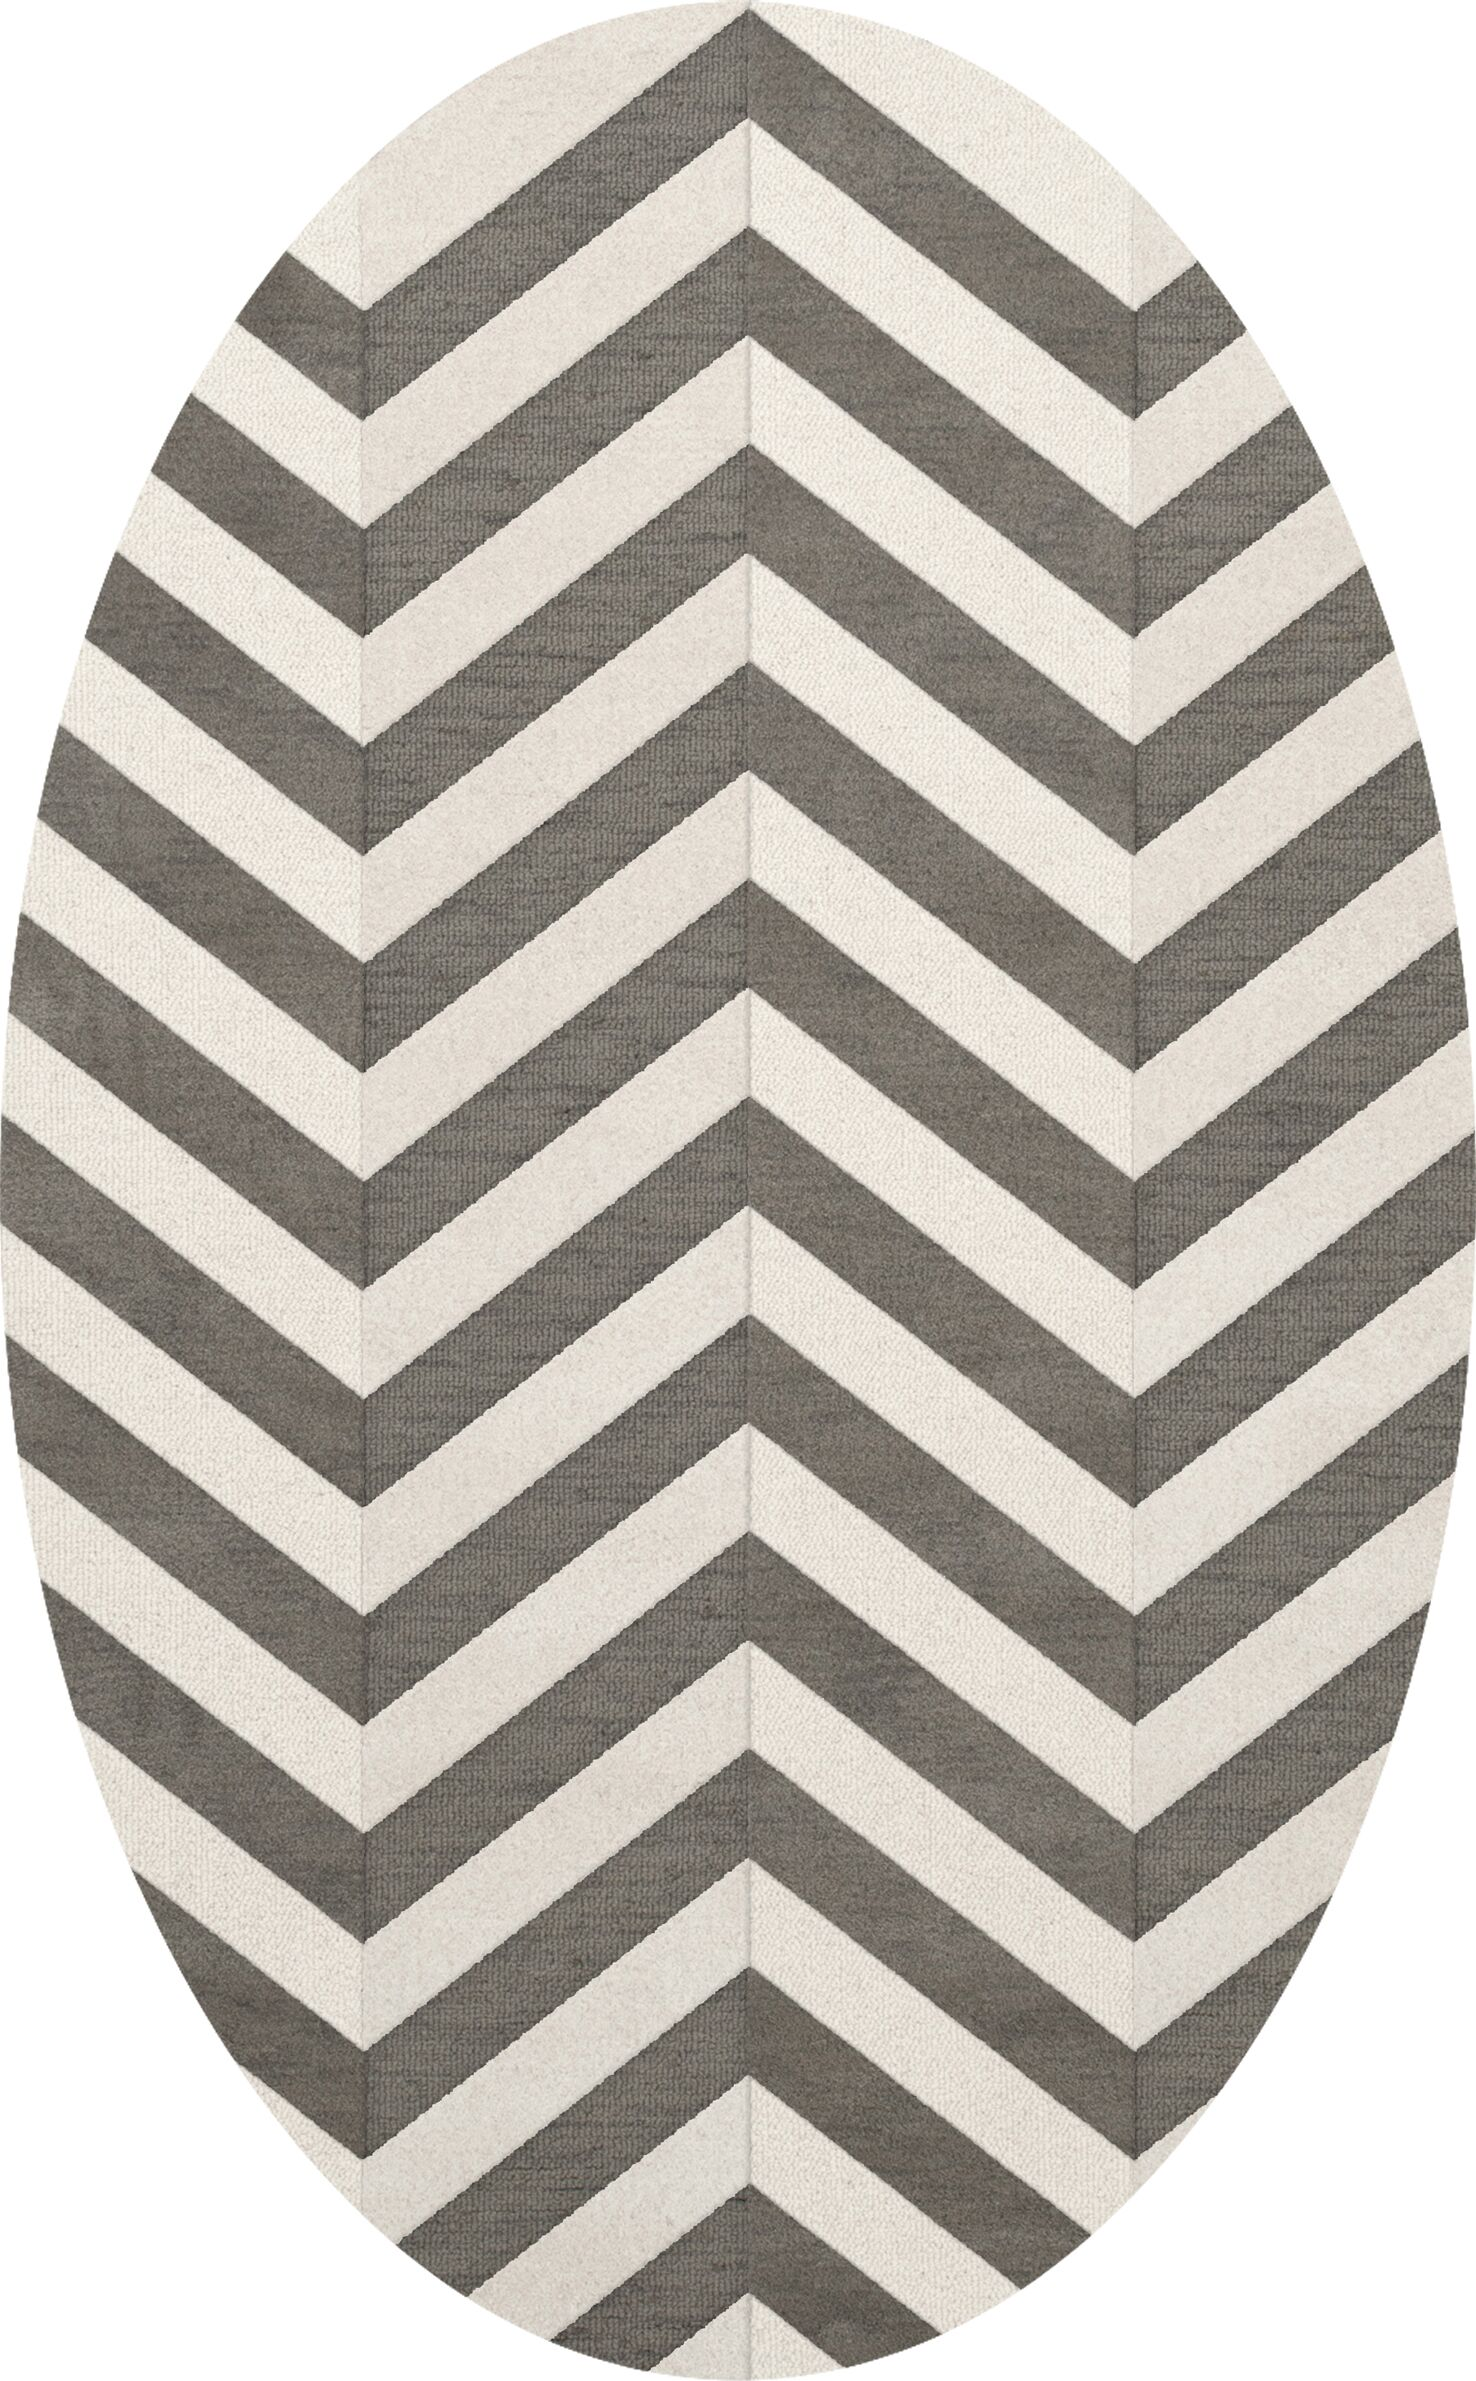 Shepardson Wool Quarry Area Rug Rug Size: Oval 4' x 6'